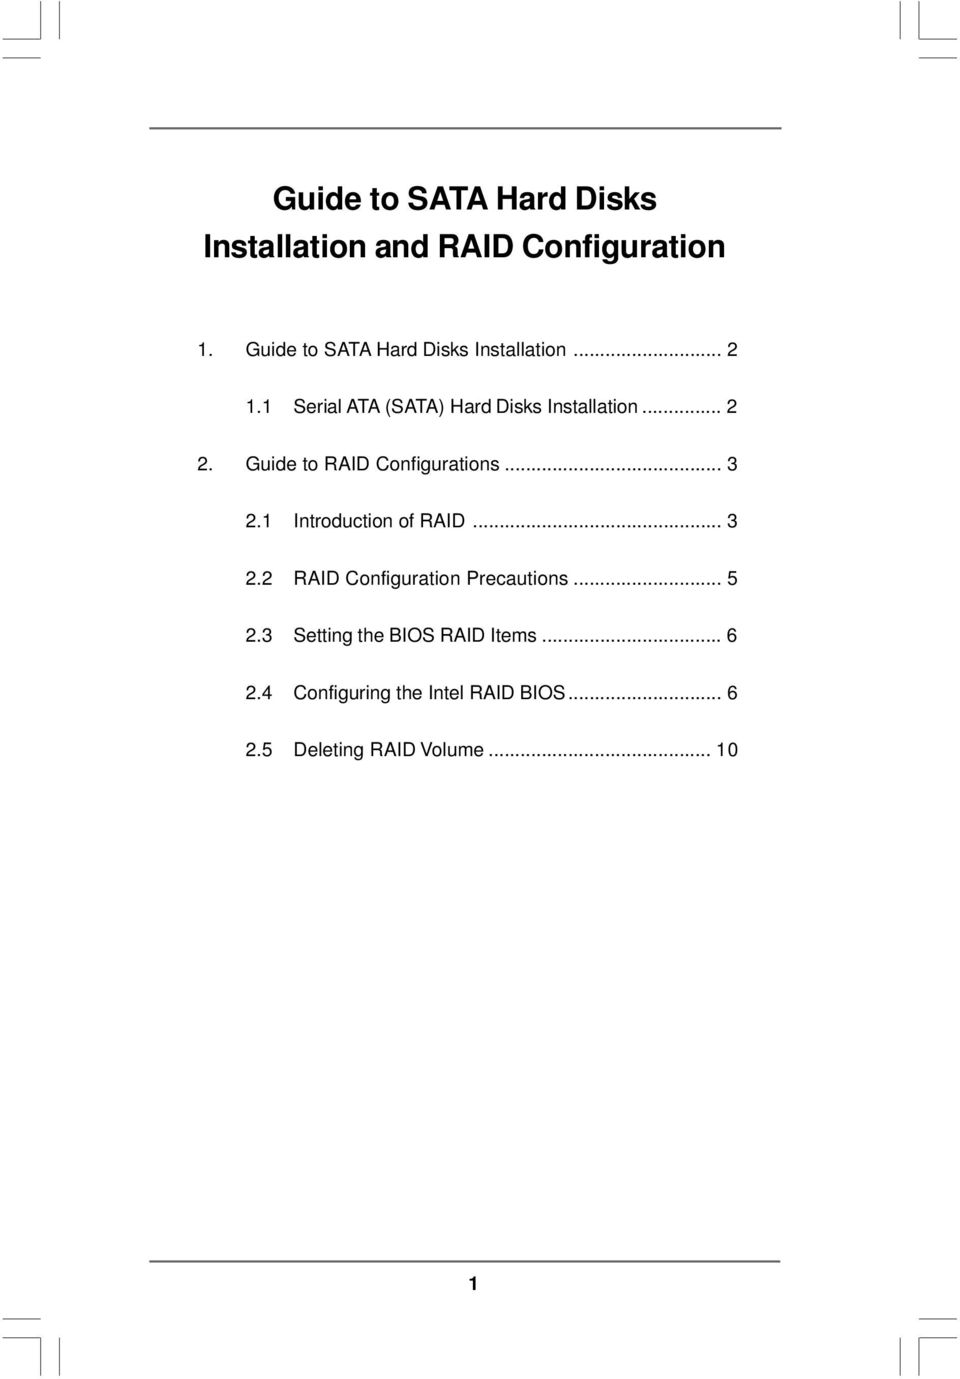 Guide to RAID Configurations... 3 2.1 Introduction of RAID... 3 2.2 RAID Configuration Precautions.